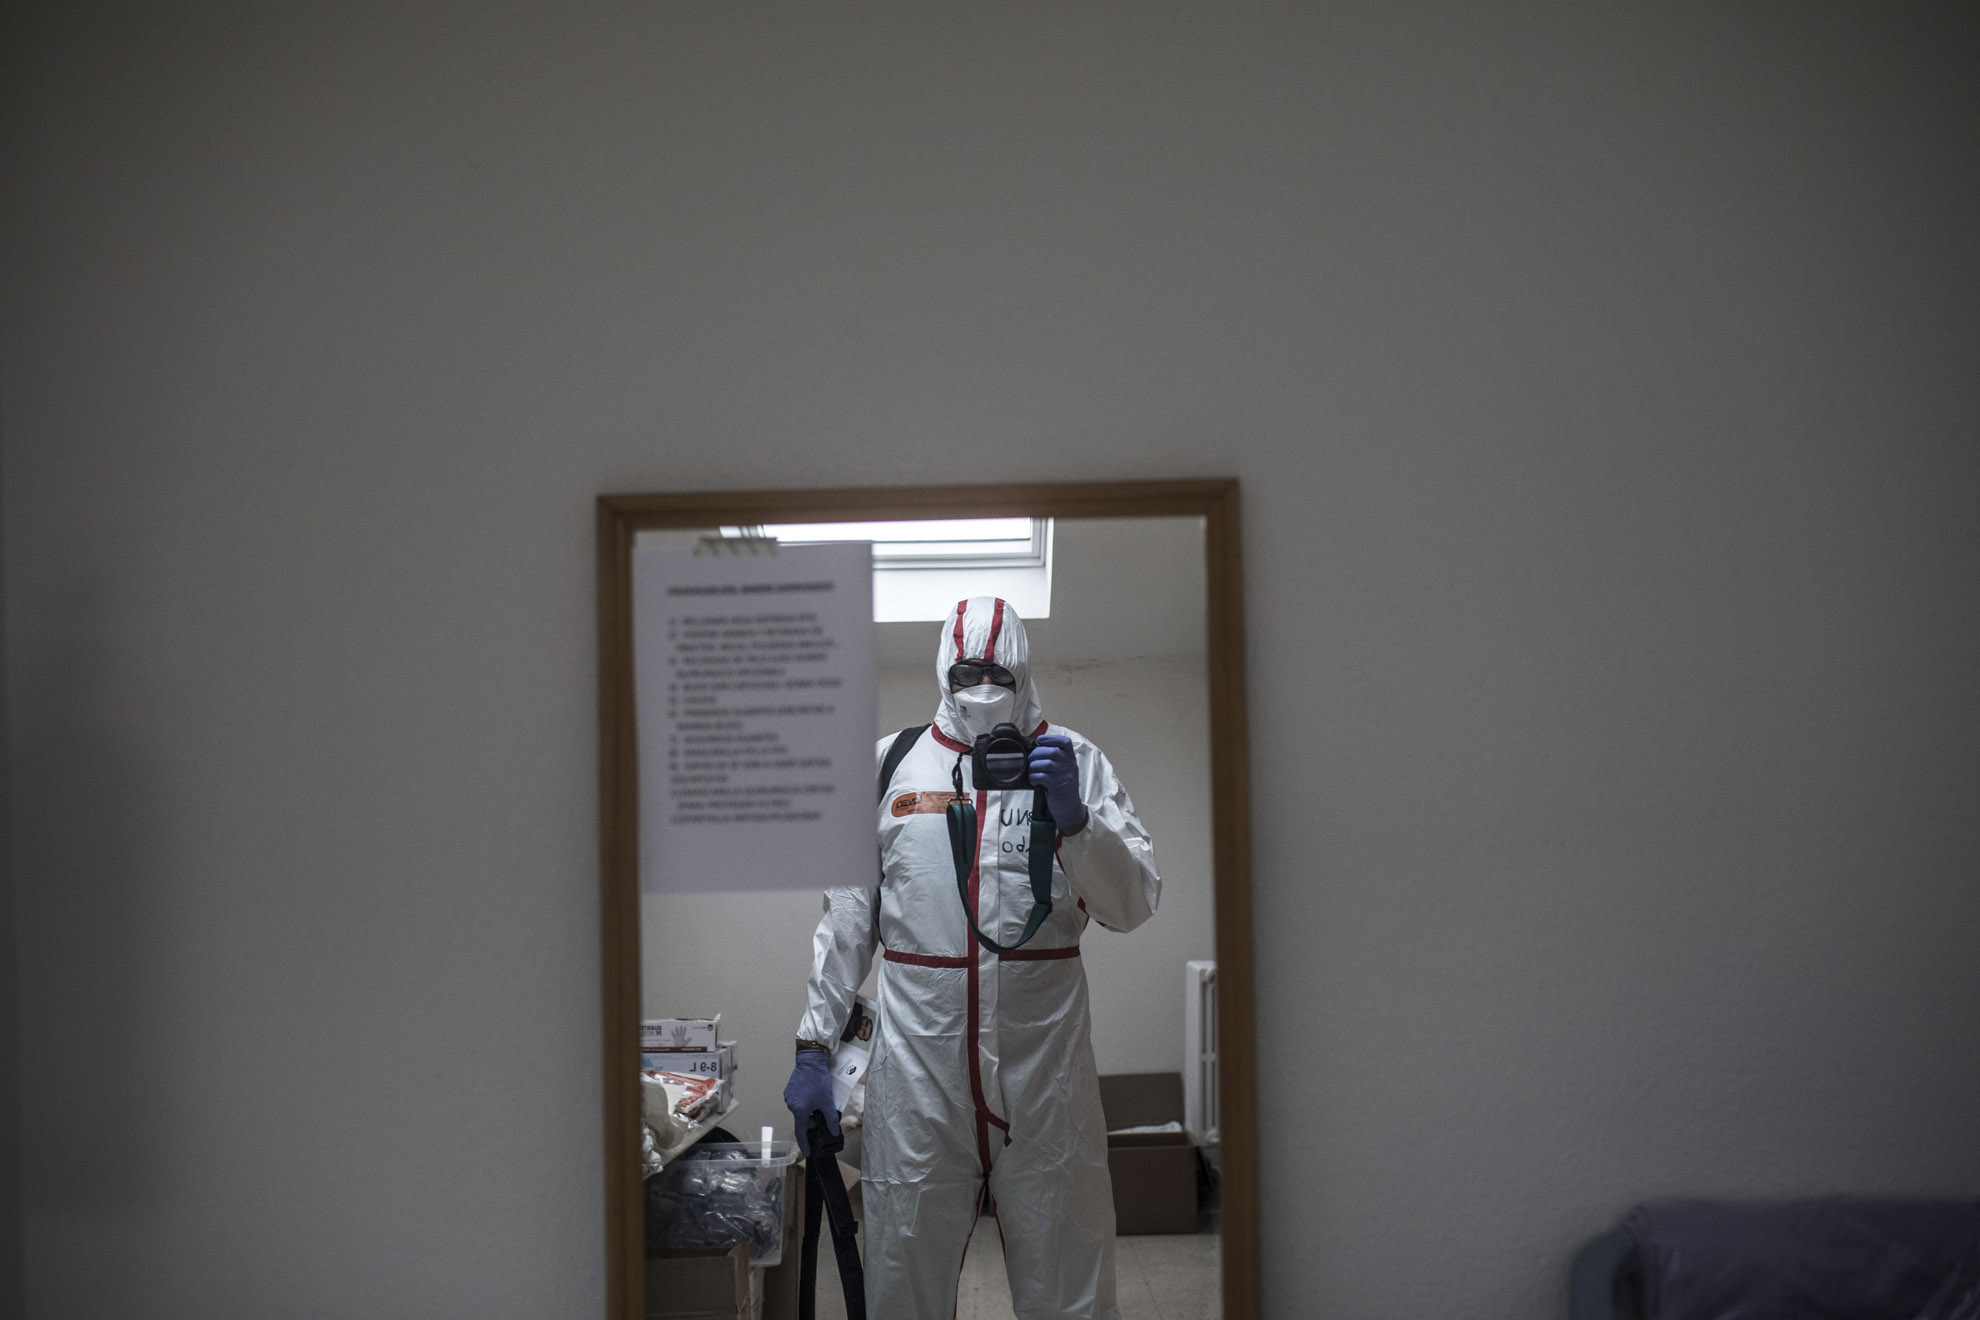 Me, my self and I ready to shoot into the COVID-19 area at the Sanatorio Covadonga medical institution in Gijón, Asturias, Spain.